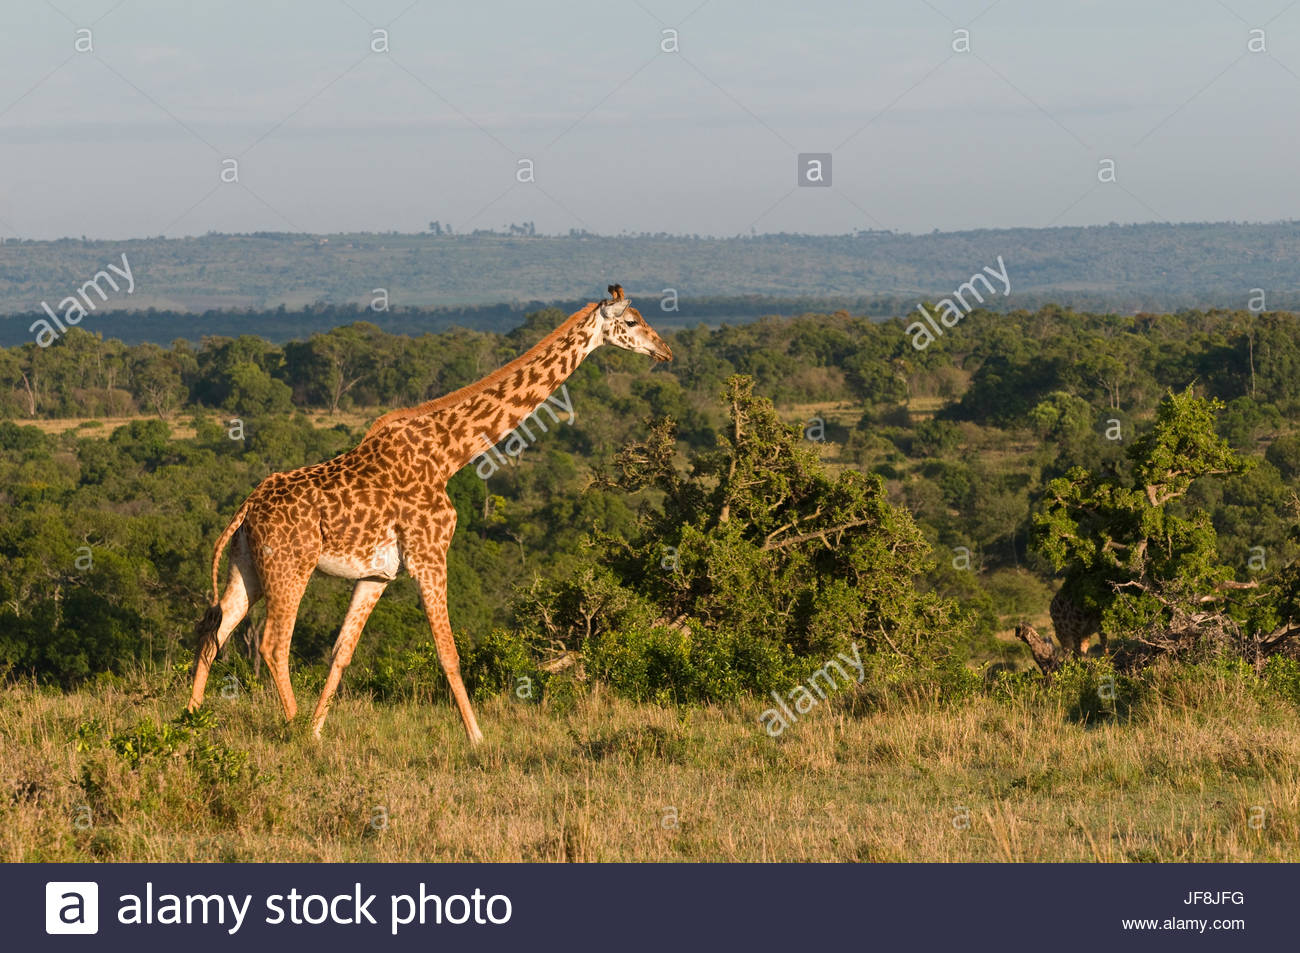 A Maasai giraffe, Giraffa camelopardalis tippelskirchi, walking in a vast landscape of grasslands and trees. - Stock Image